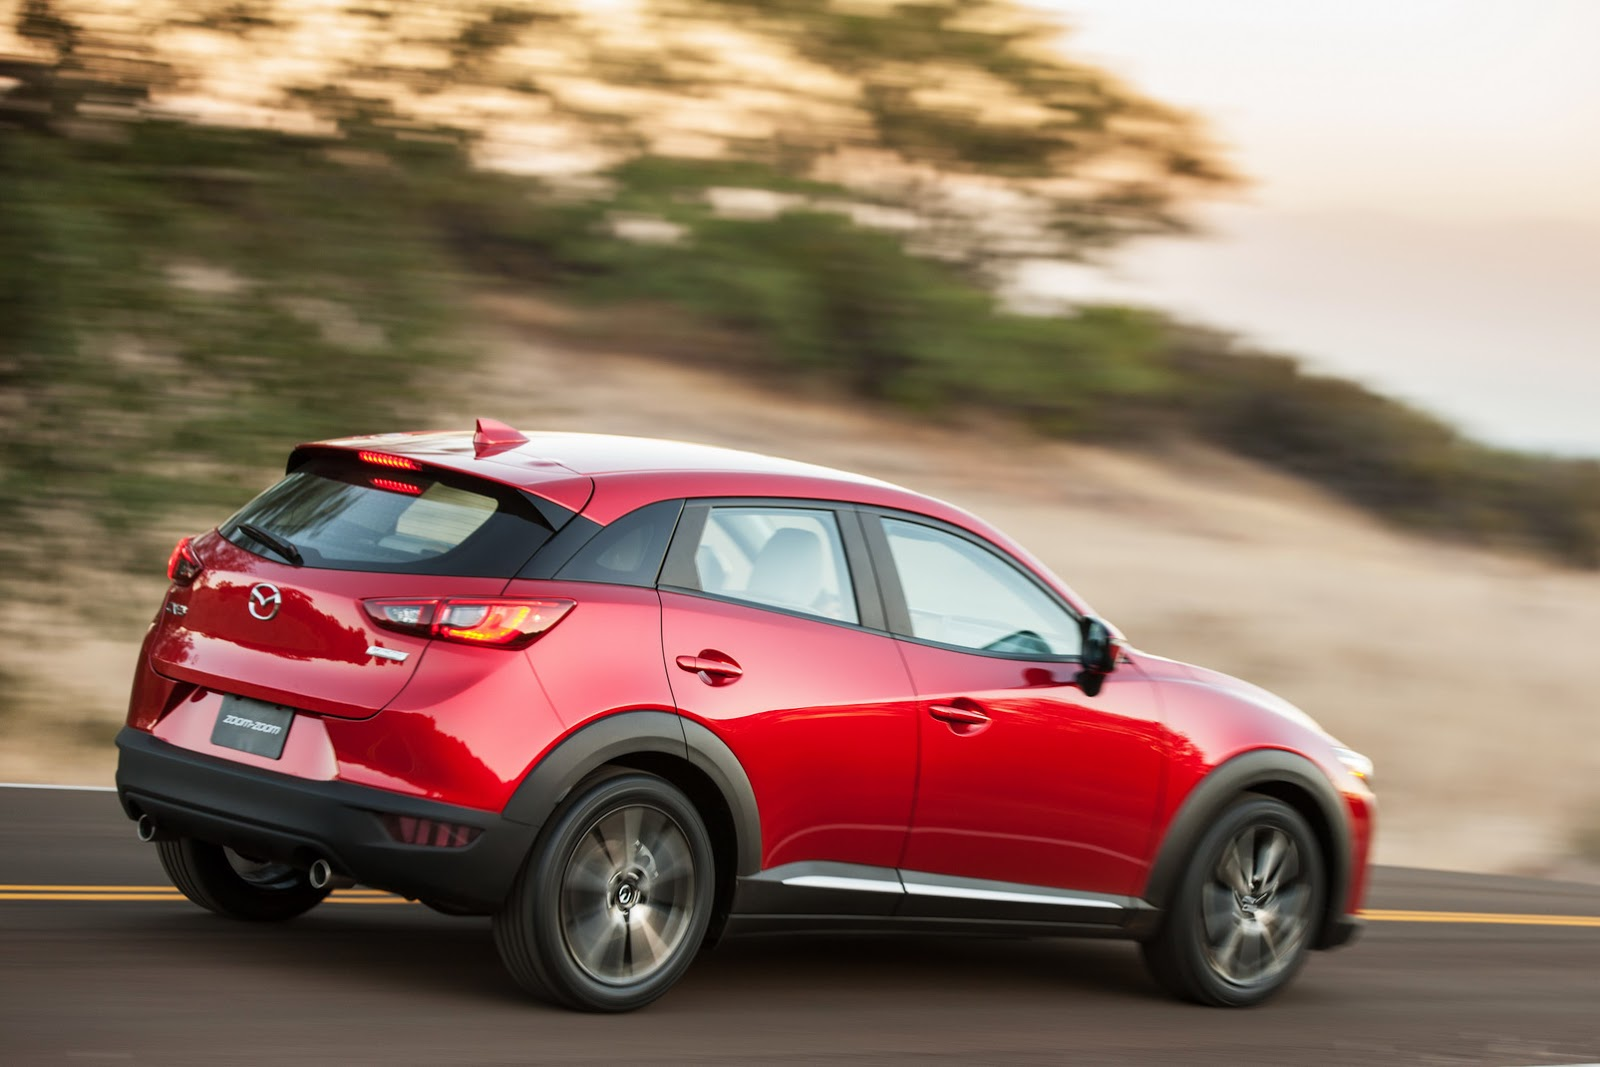 2016 mazda cx 3 crossover looks great from every angle video autoevolution. Black Bedroom Furniture Sets. Home Design Ideas